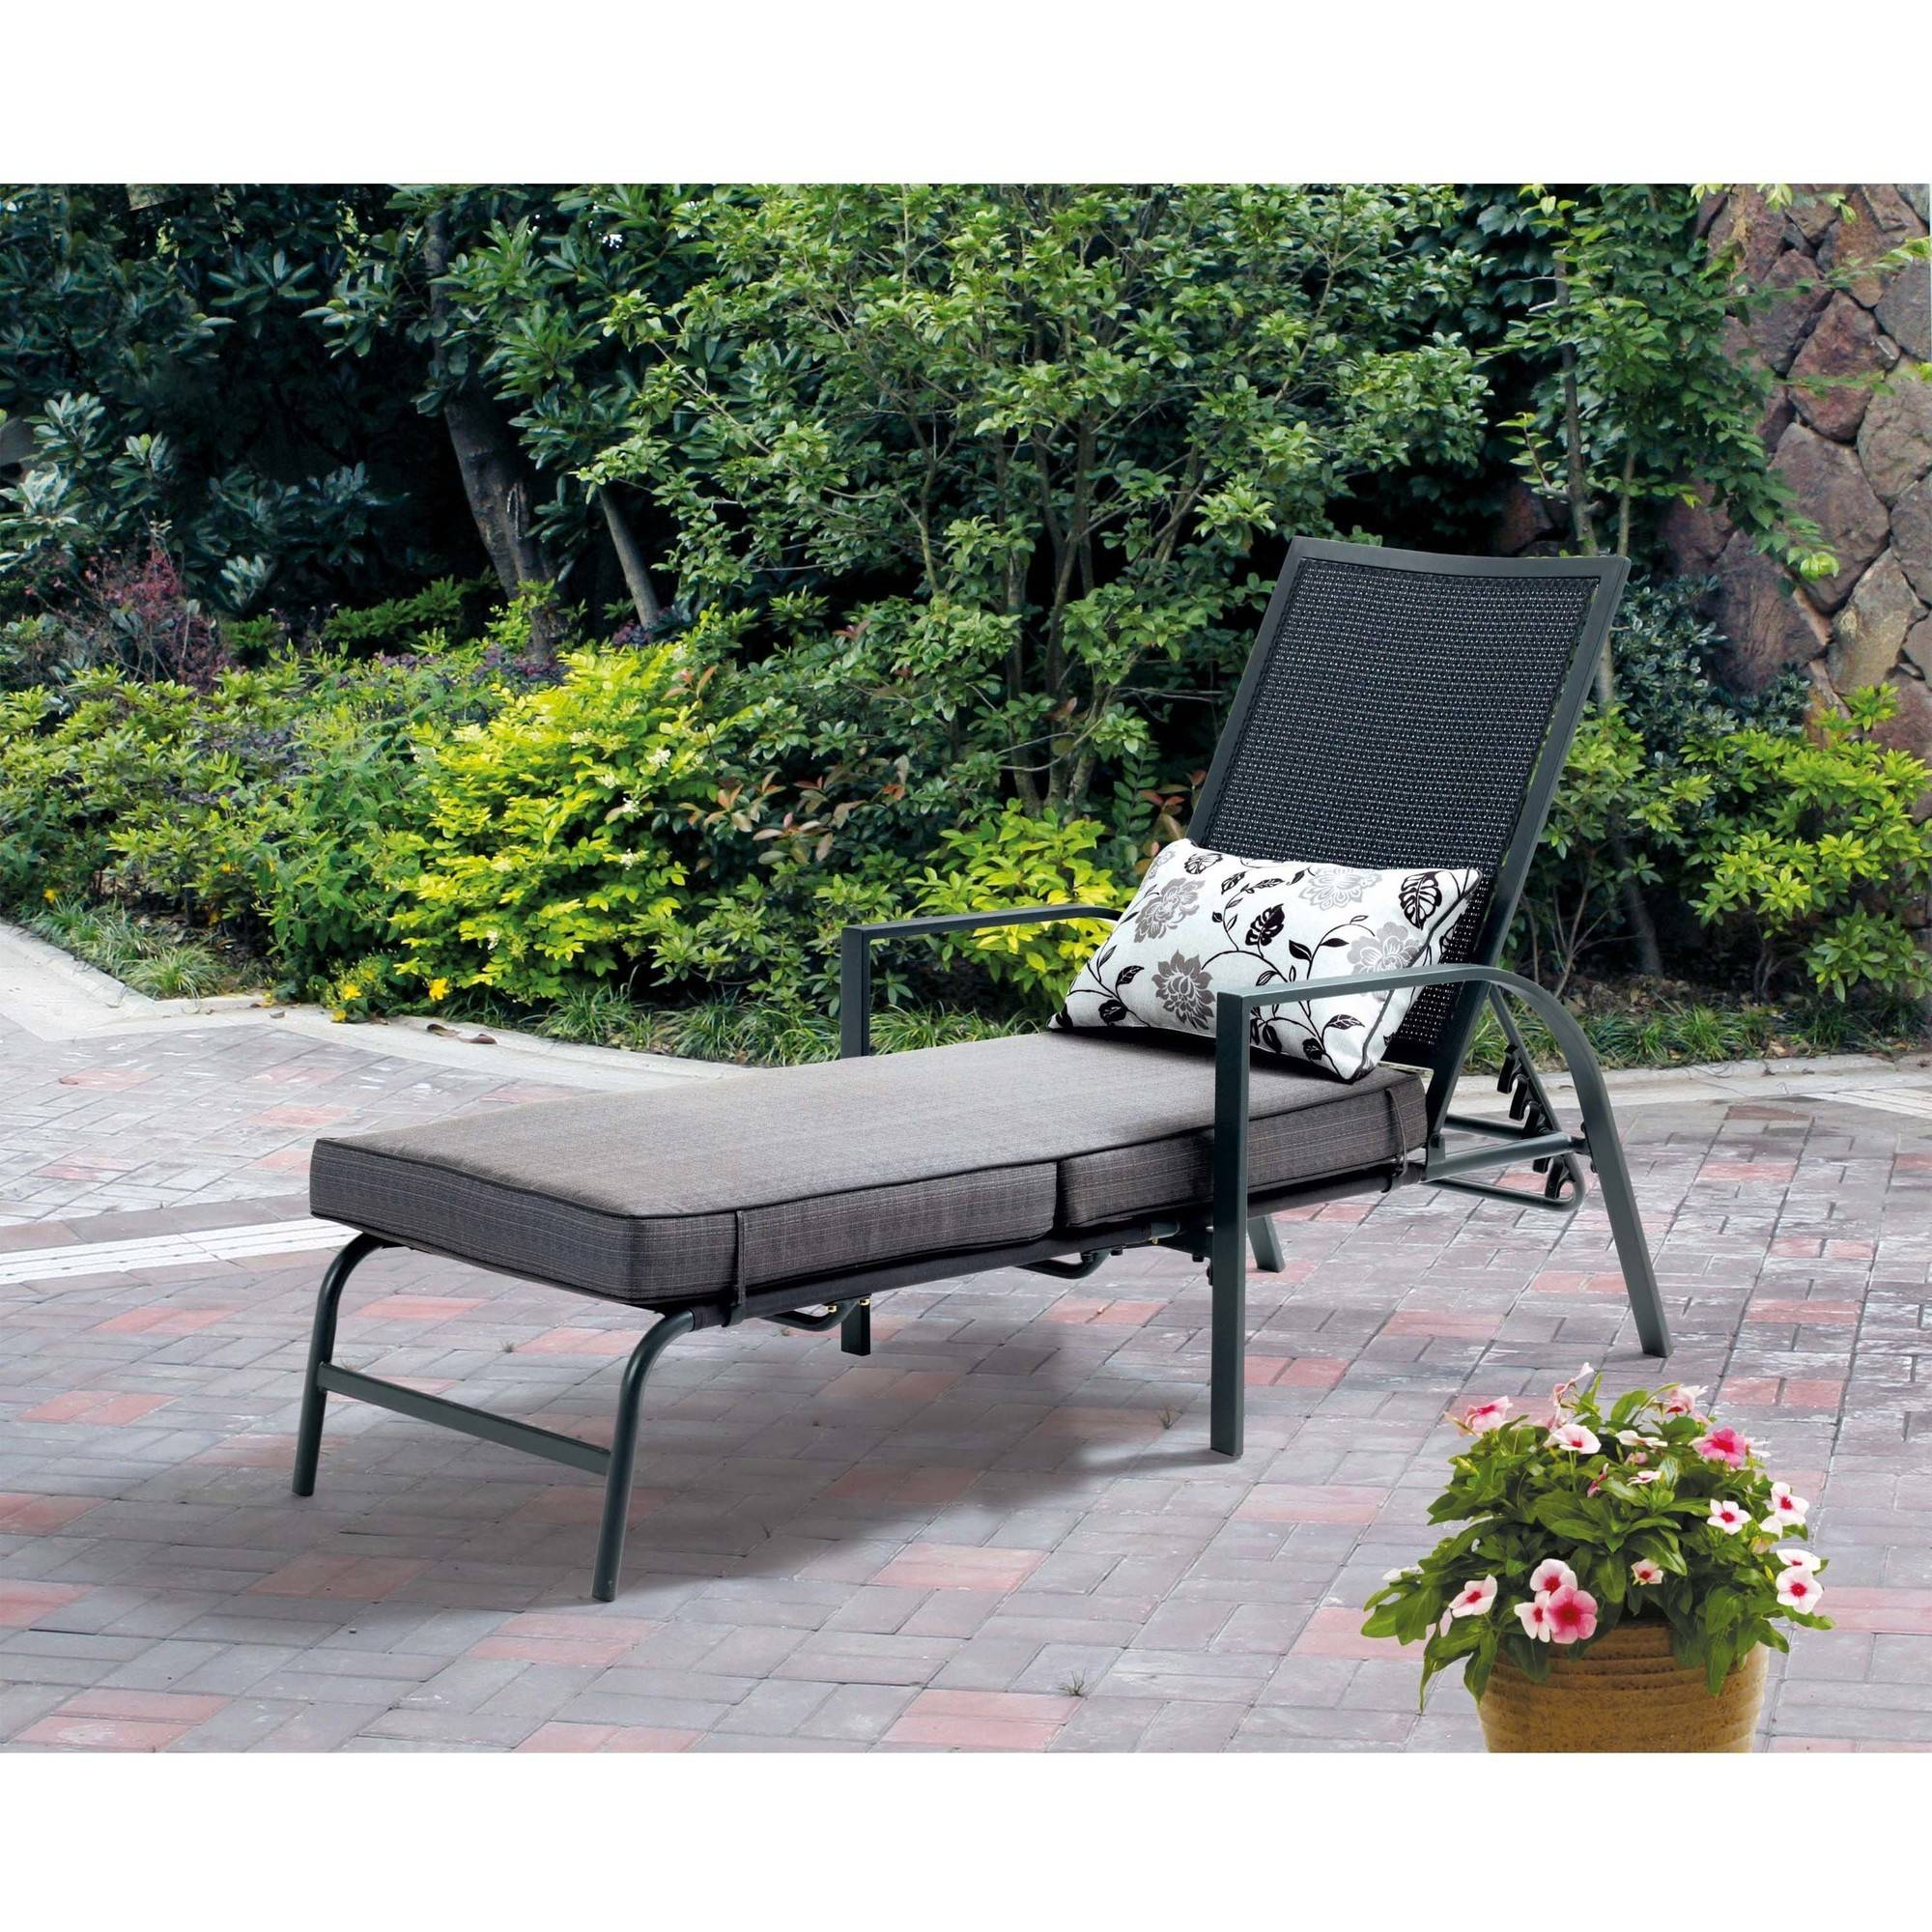 Mainstays Alexandra Square Chaise Lounge, Gray with Leaf Design